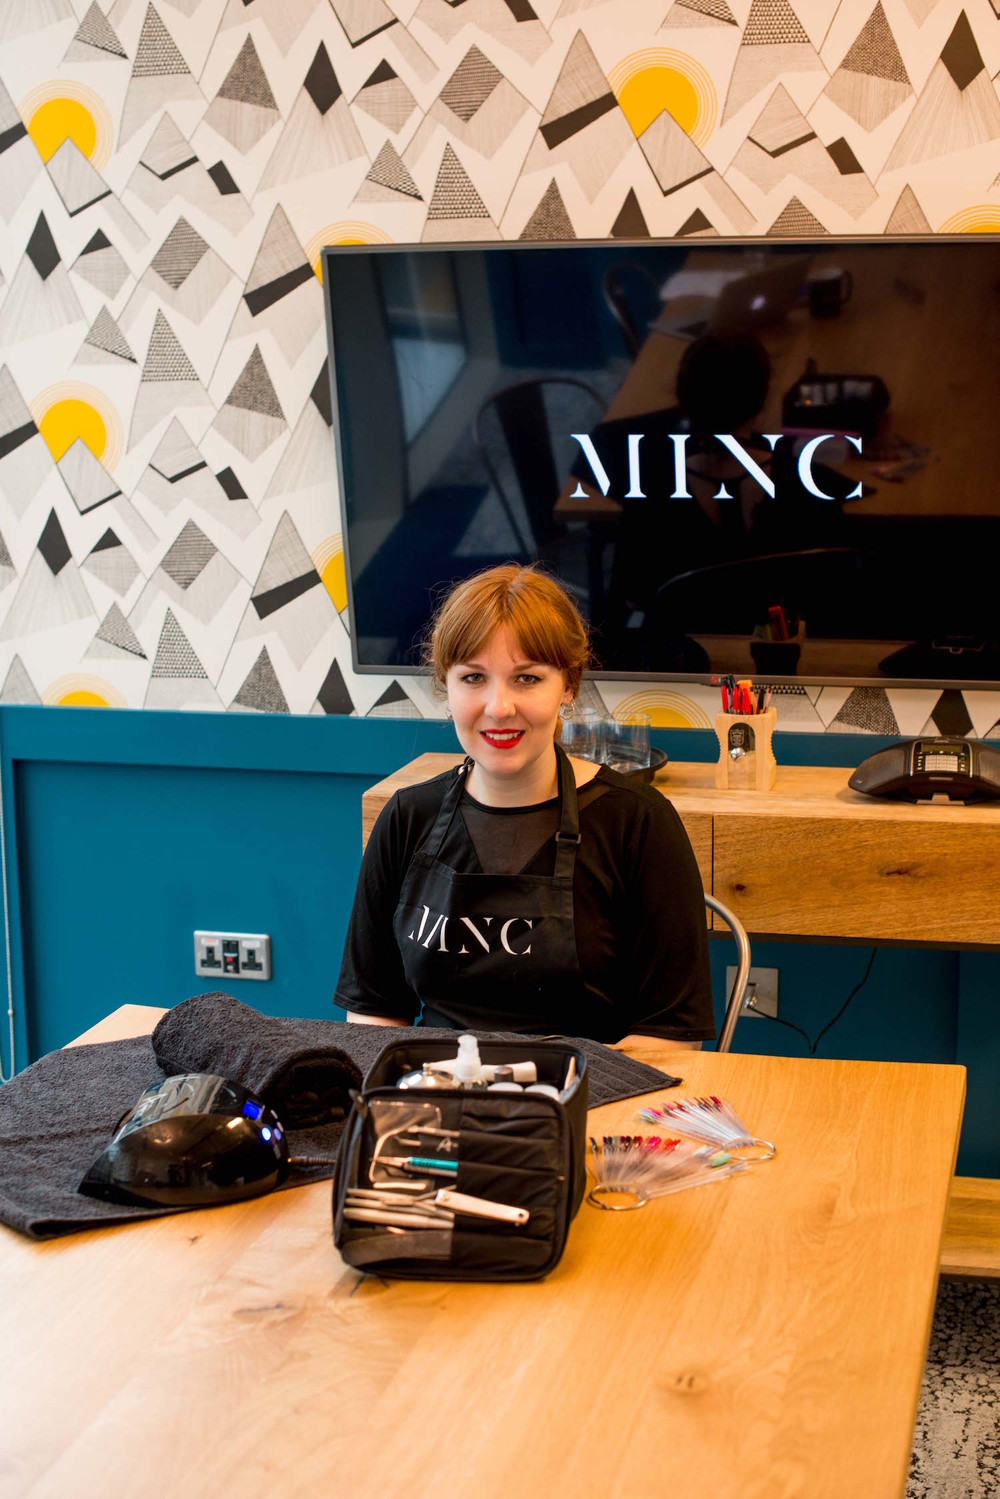 MINC Beauty : Professional In-Office Manicures and Beauty Services